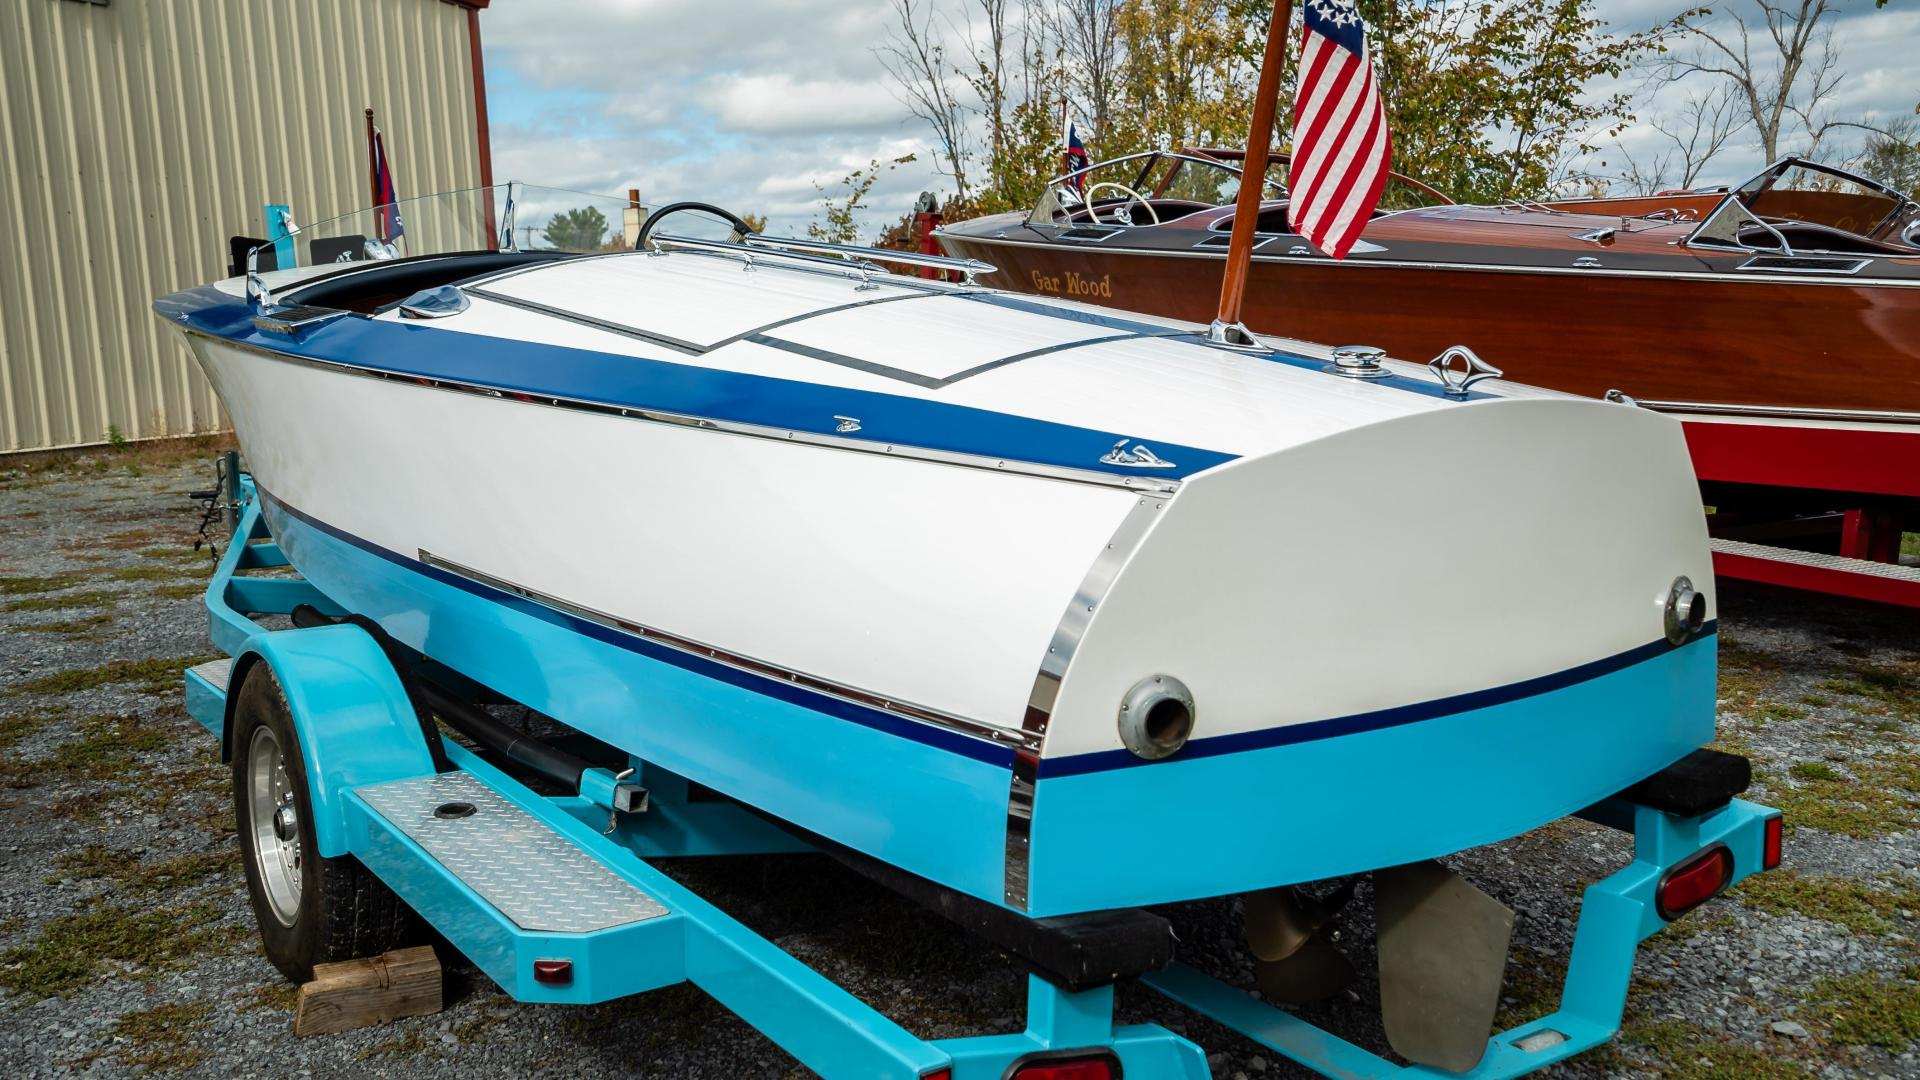 Chris-Craft-Special Race boat 1937 -Clayton-New York-United States-1546491 | Thumbnail